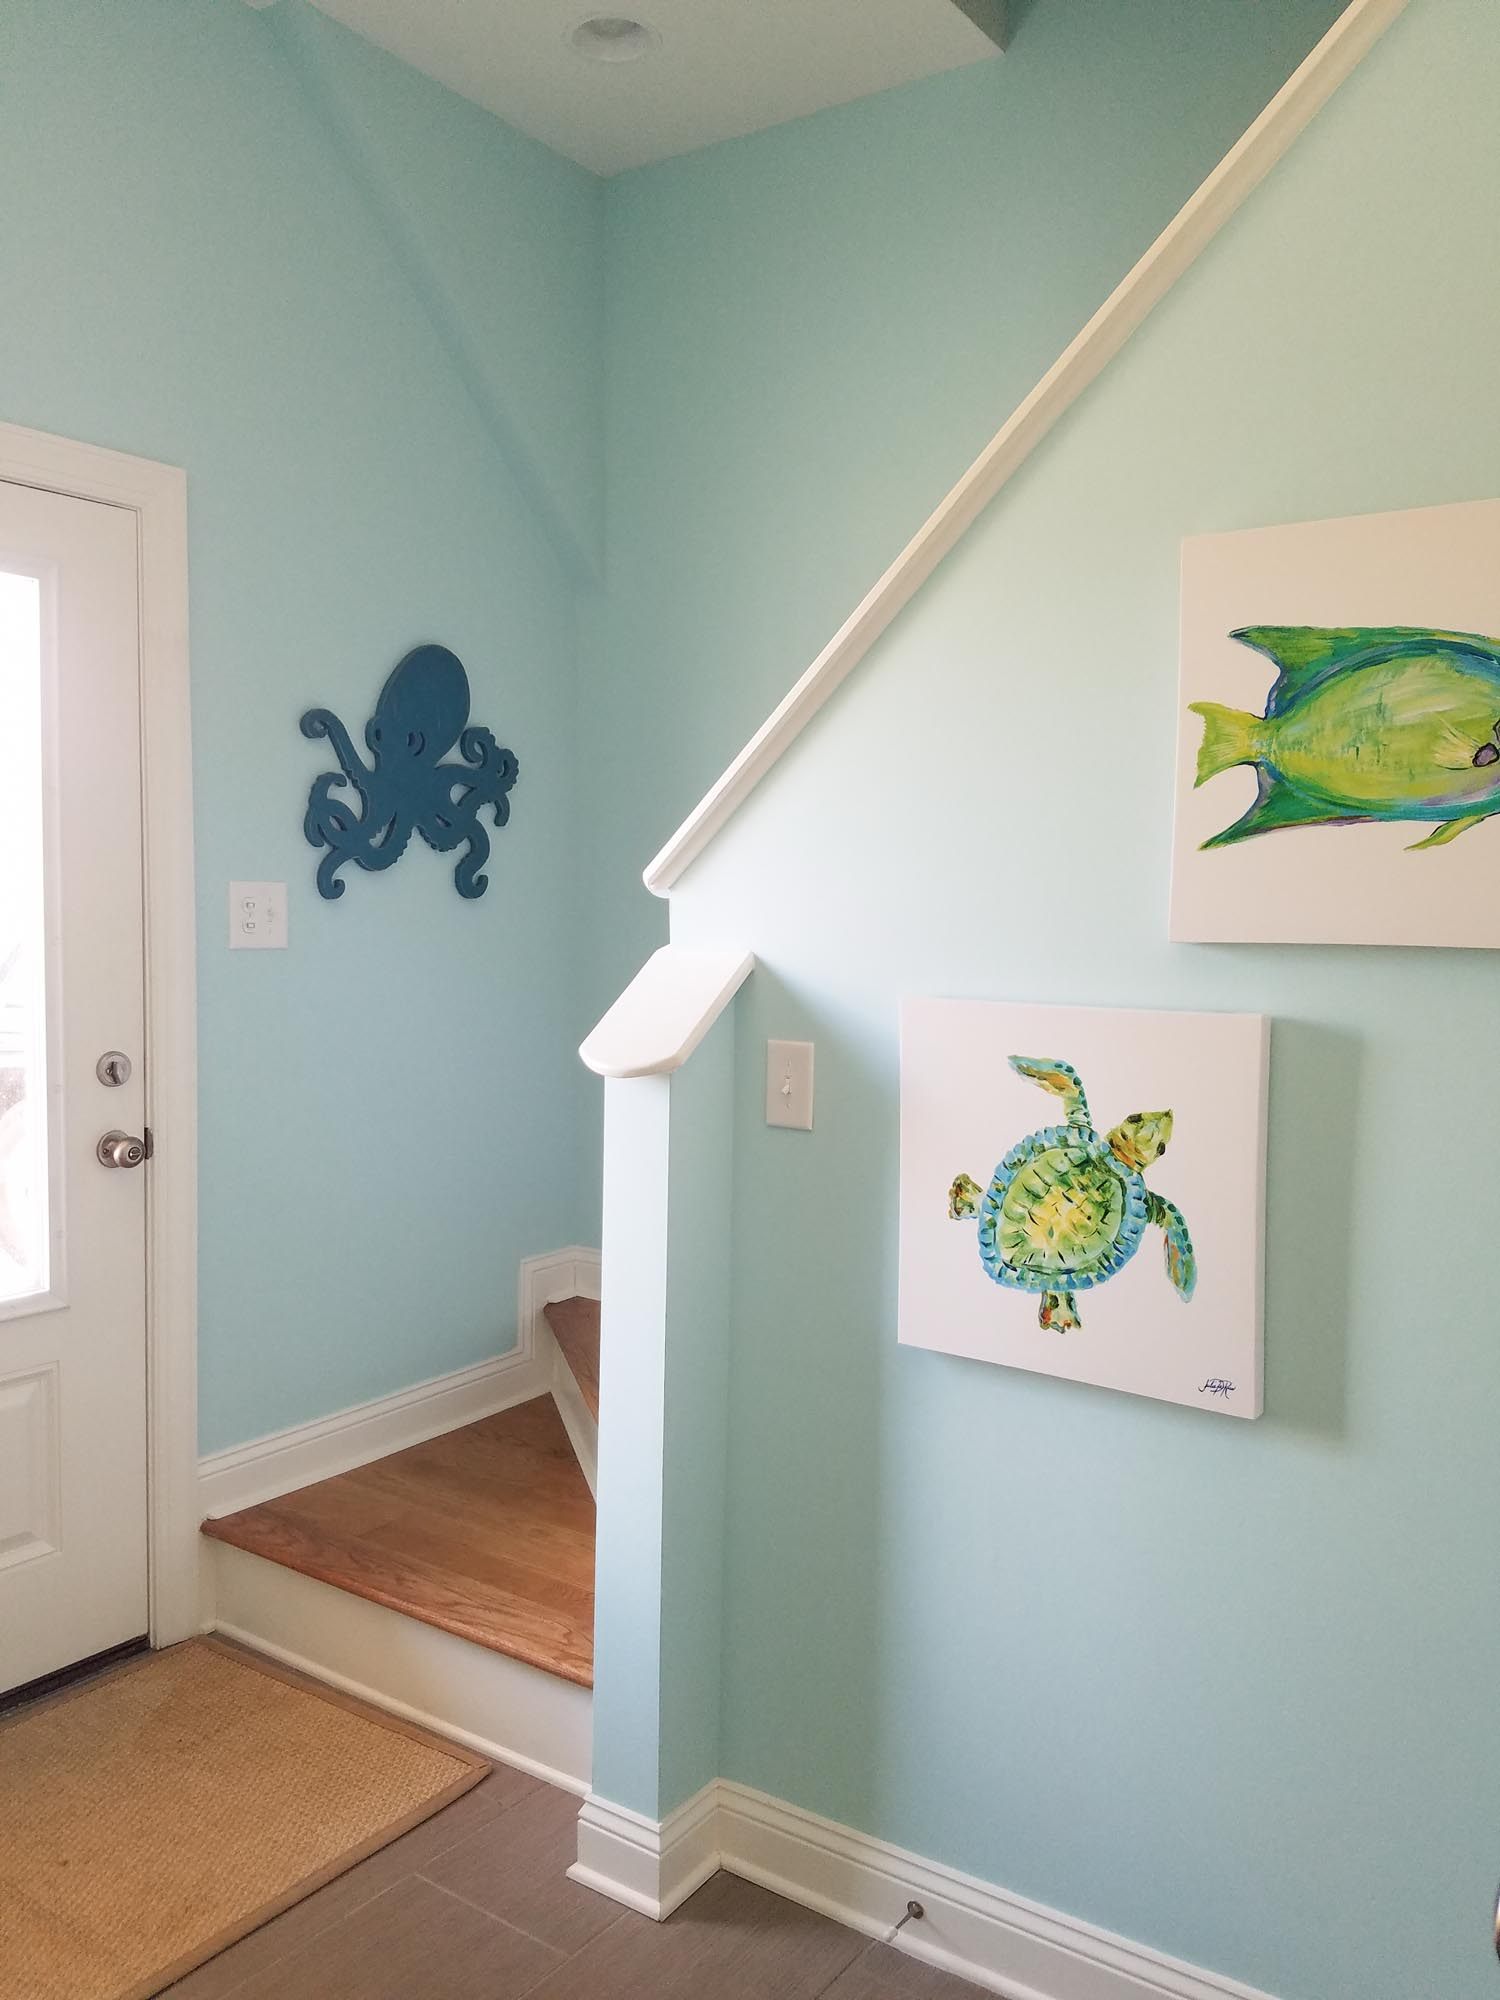 Entry way with coastal themed hanging art